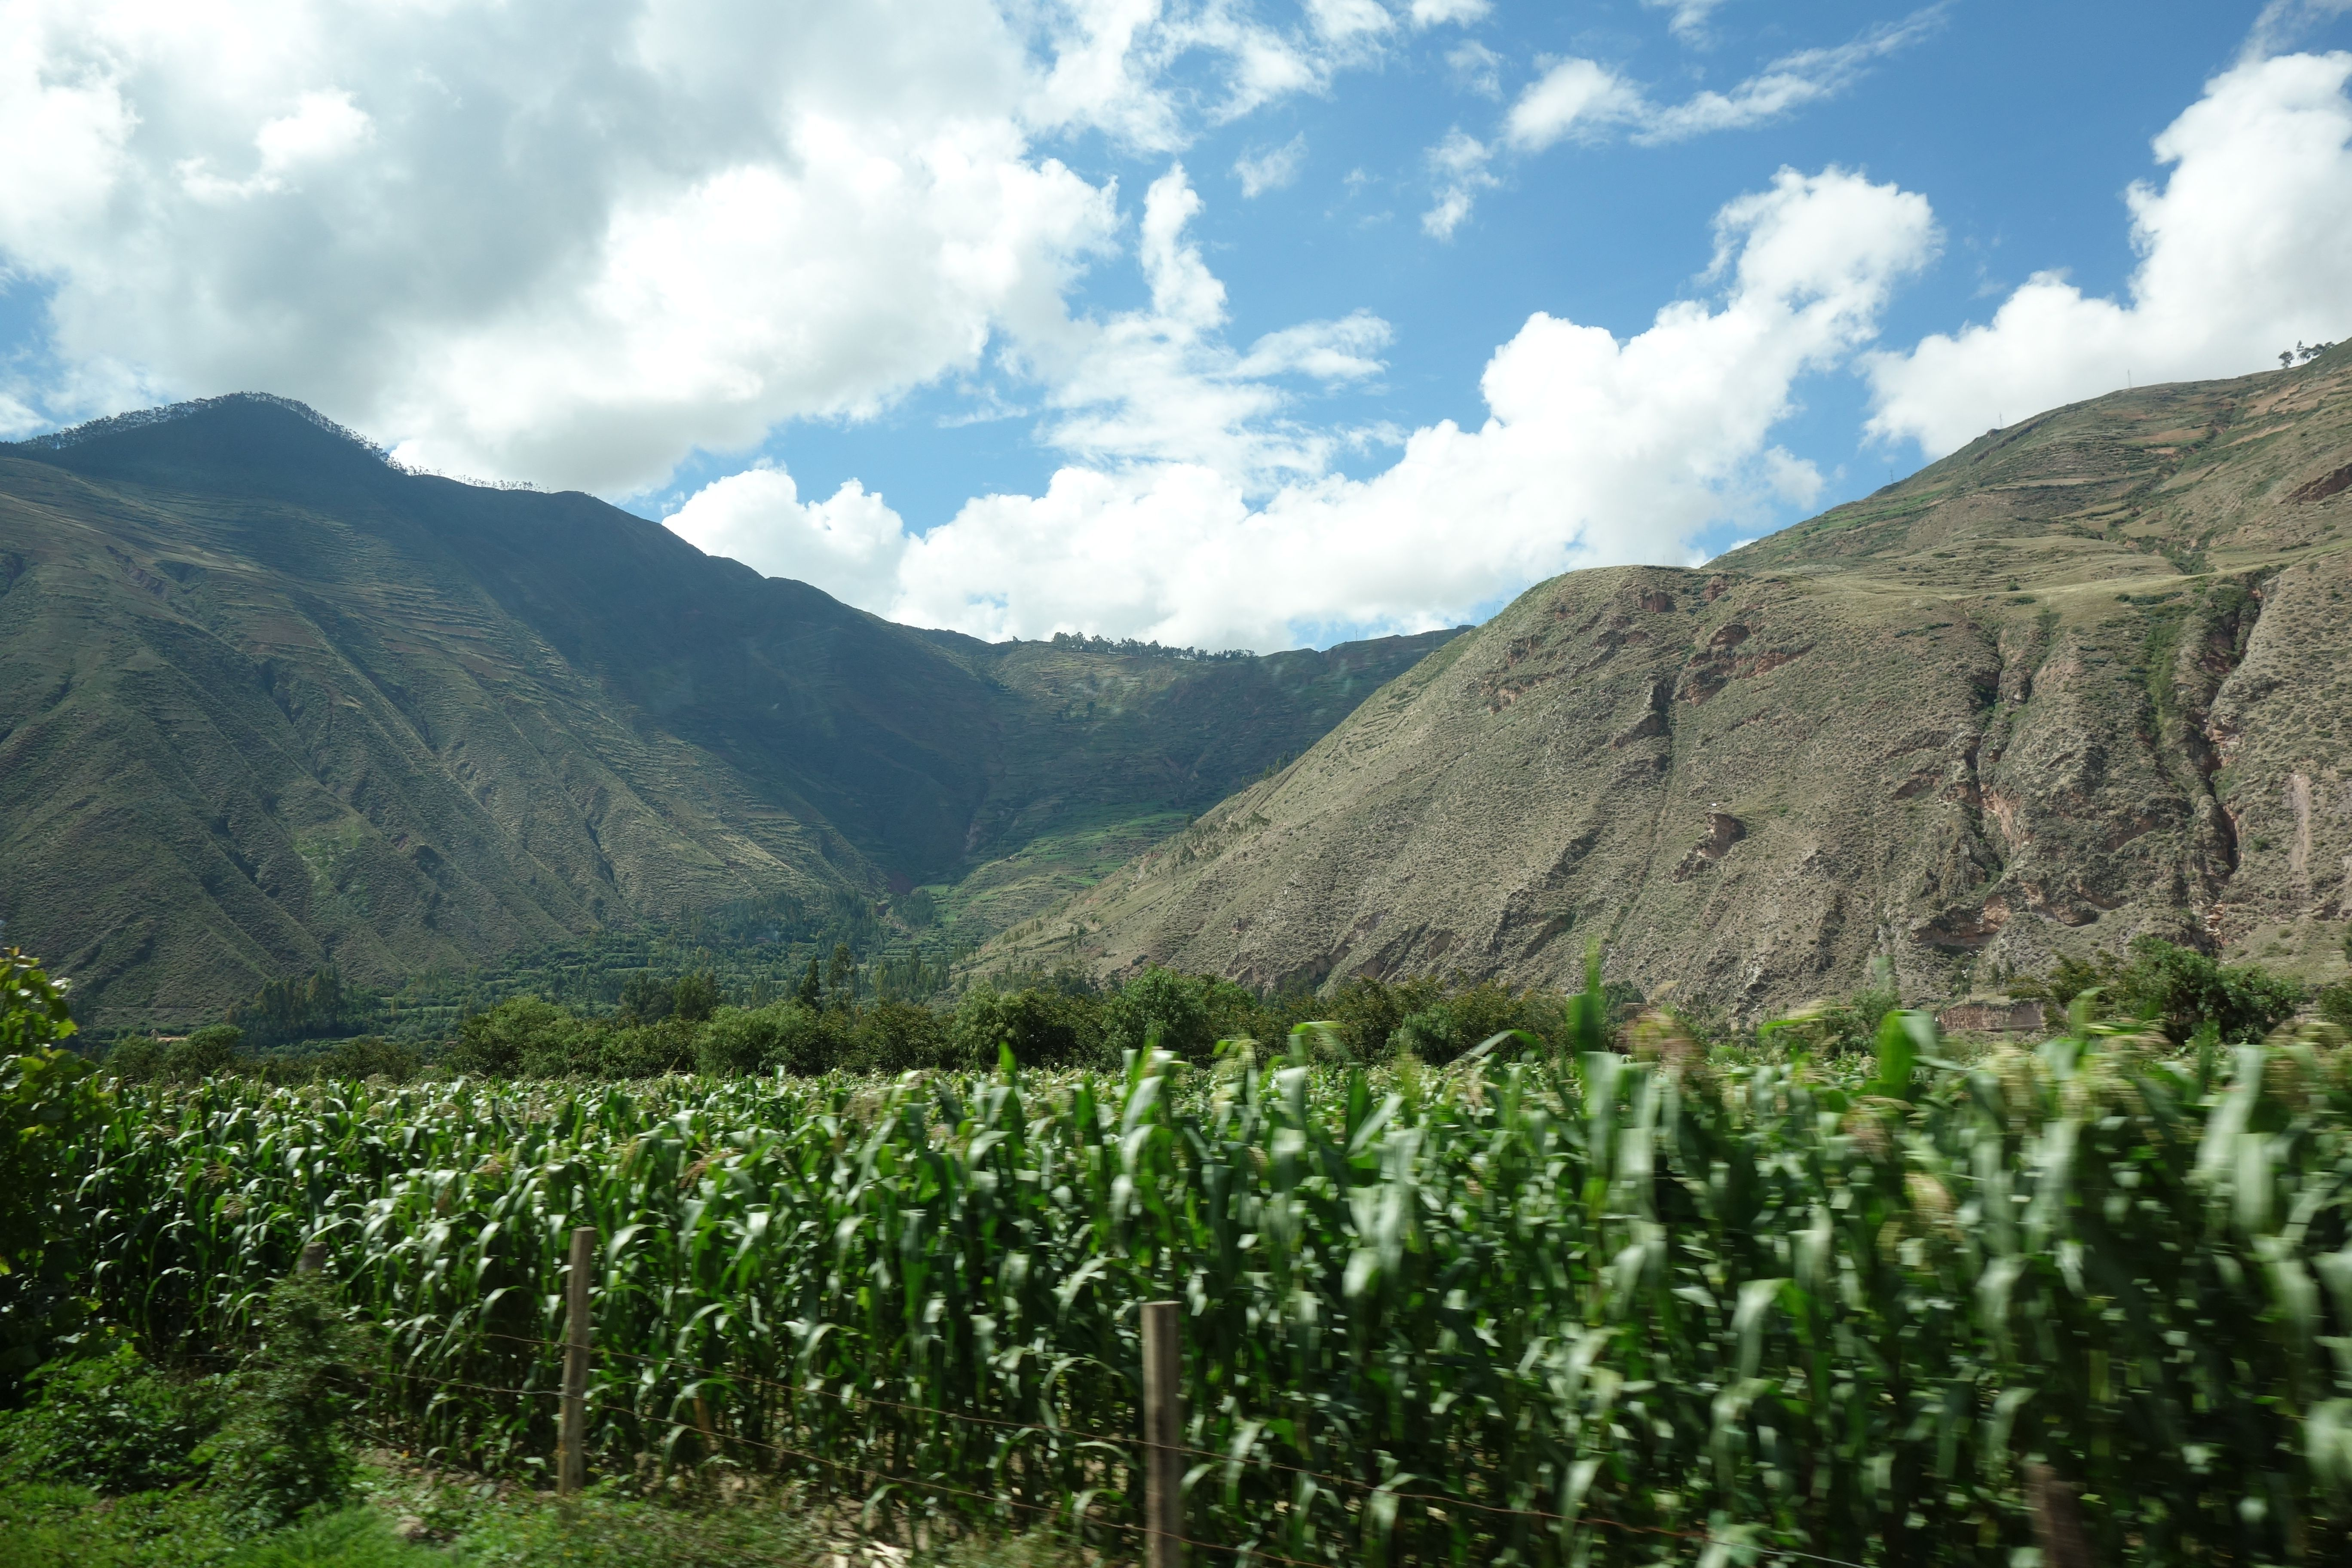 Landscape in Sacred Valley, taken from the car. Corn fields, mountains,in height.. #sacredvalley #inca #peru